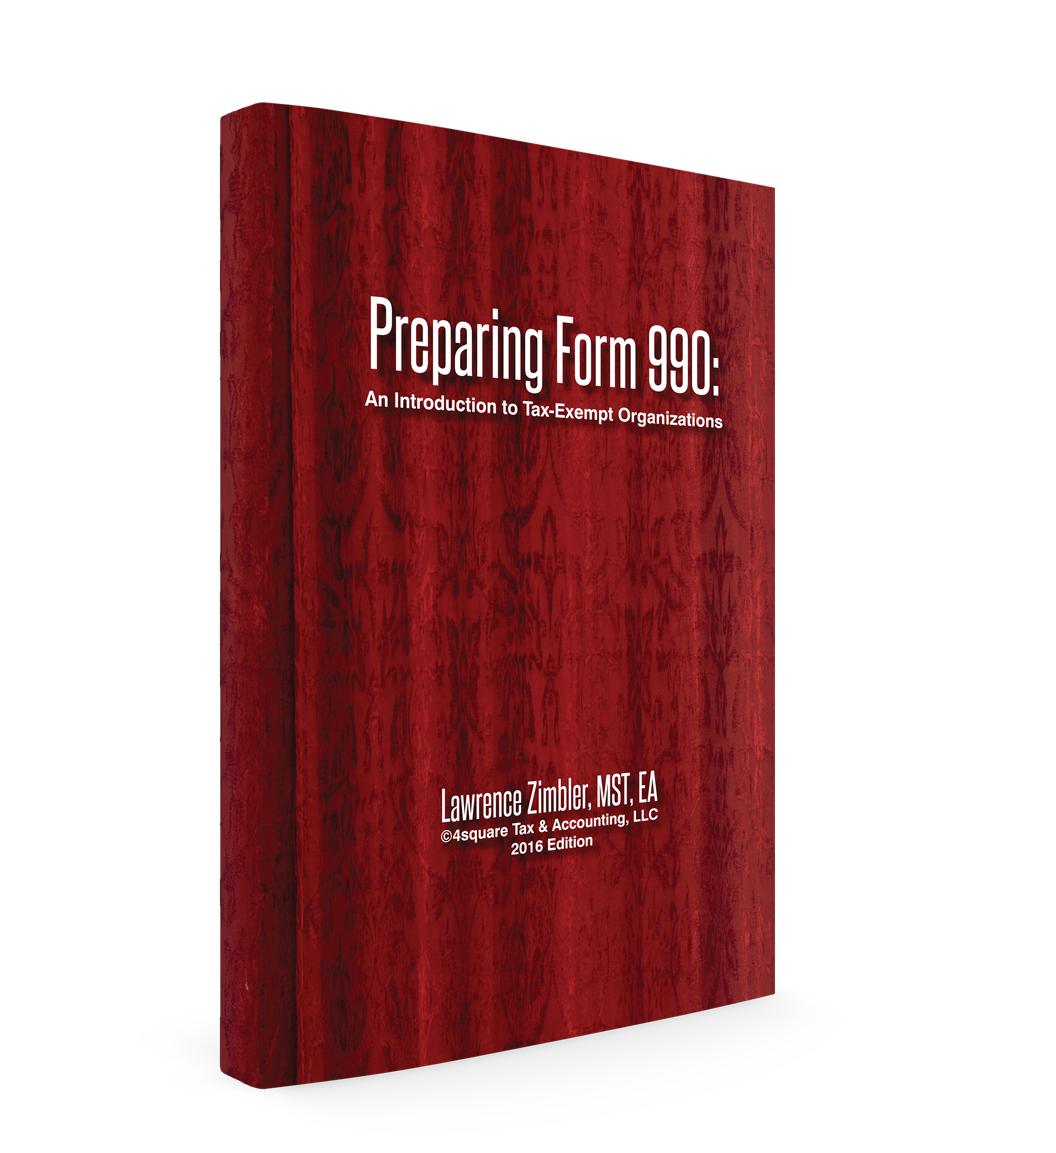 Preparing Form 990: An Introduction to Tax-Exempt Organizations (2016) - #4635